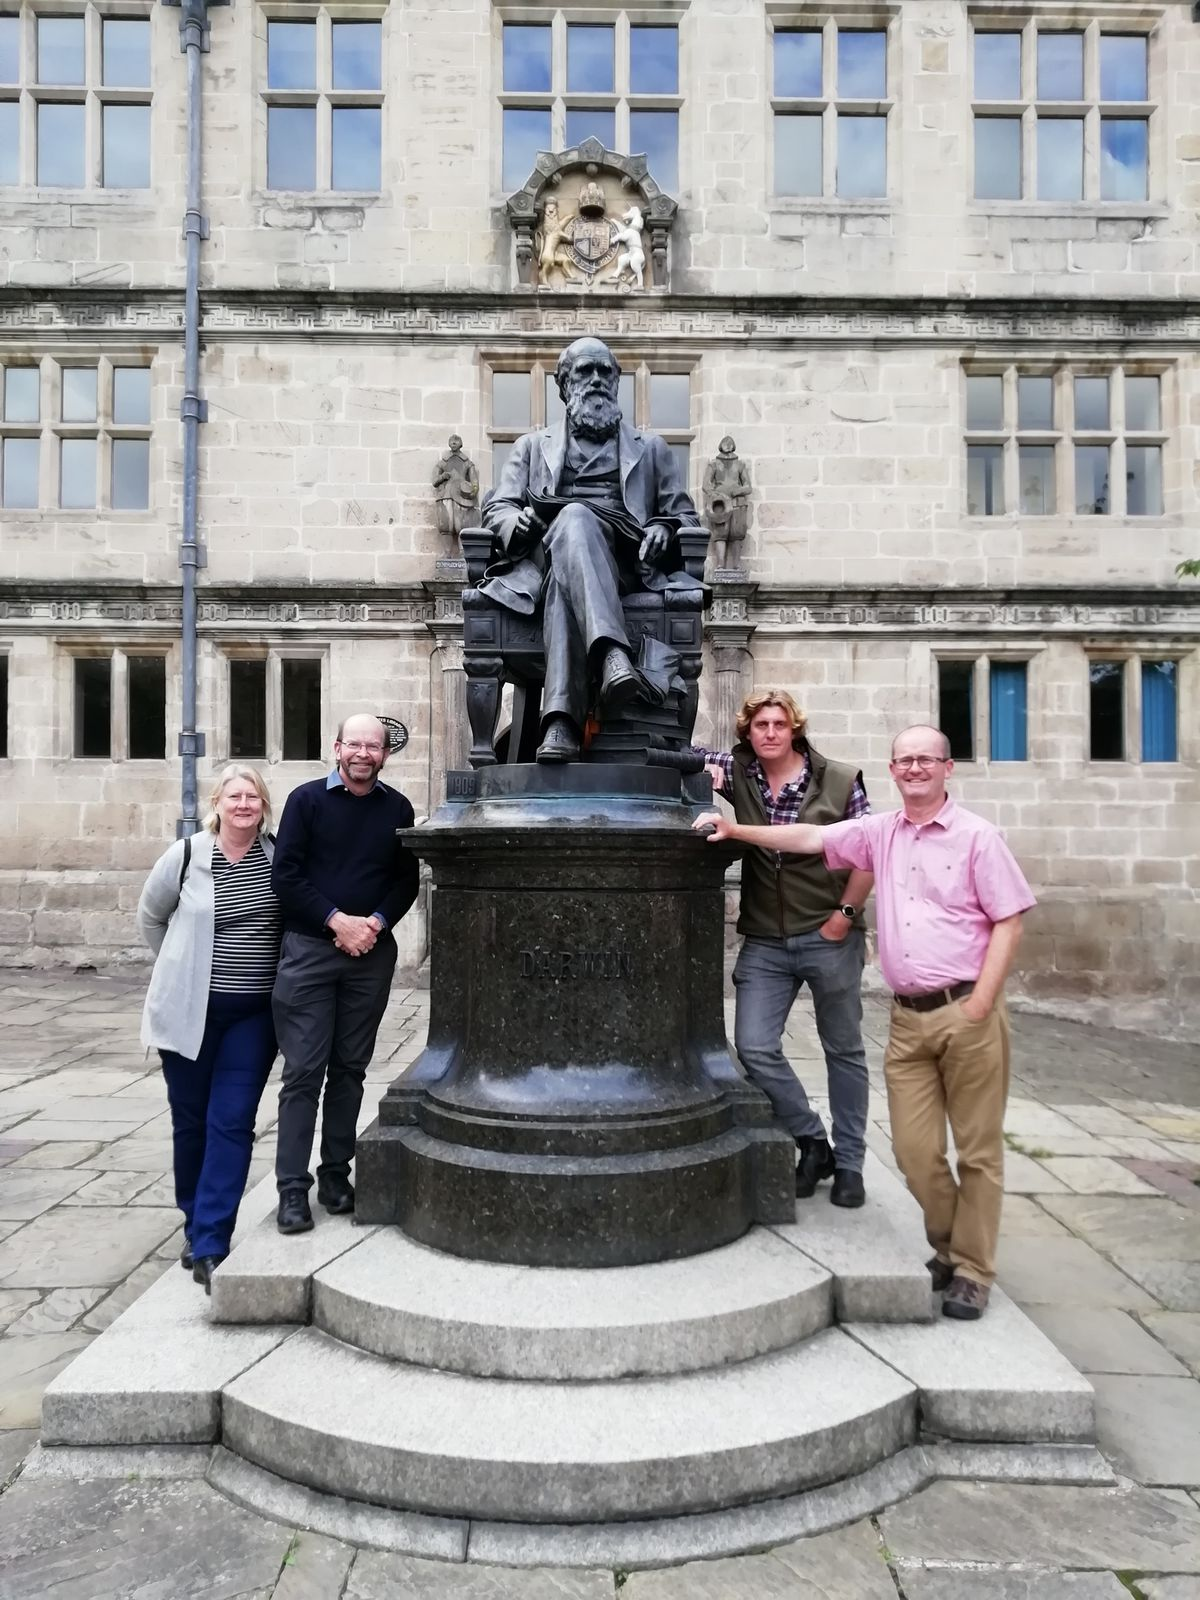 Professor Maddocks and his wife Vicky join Tim Jenkins, head of arts and humanities at University Centre Shrewsbury and Paul Kirkbright, deputy provost at UCS at Shrewsbury library